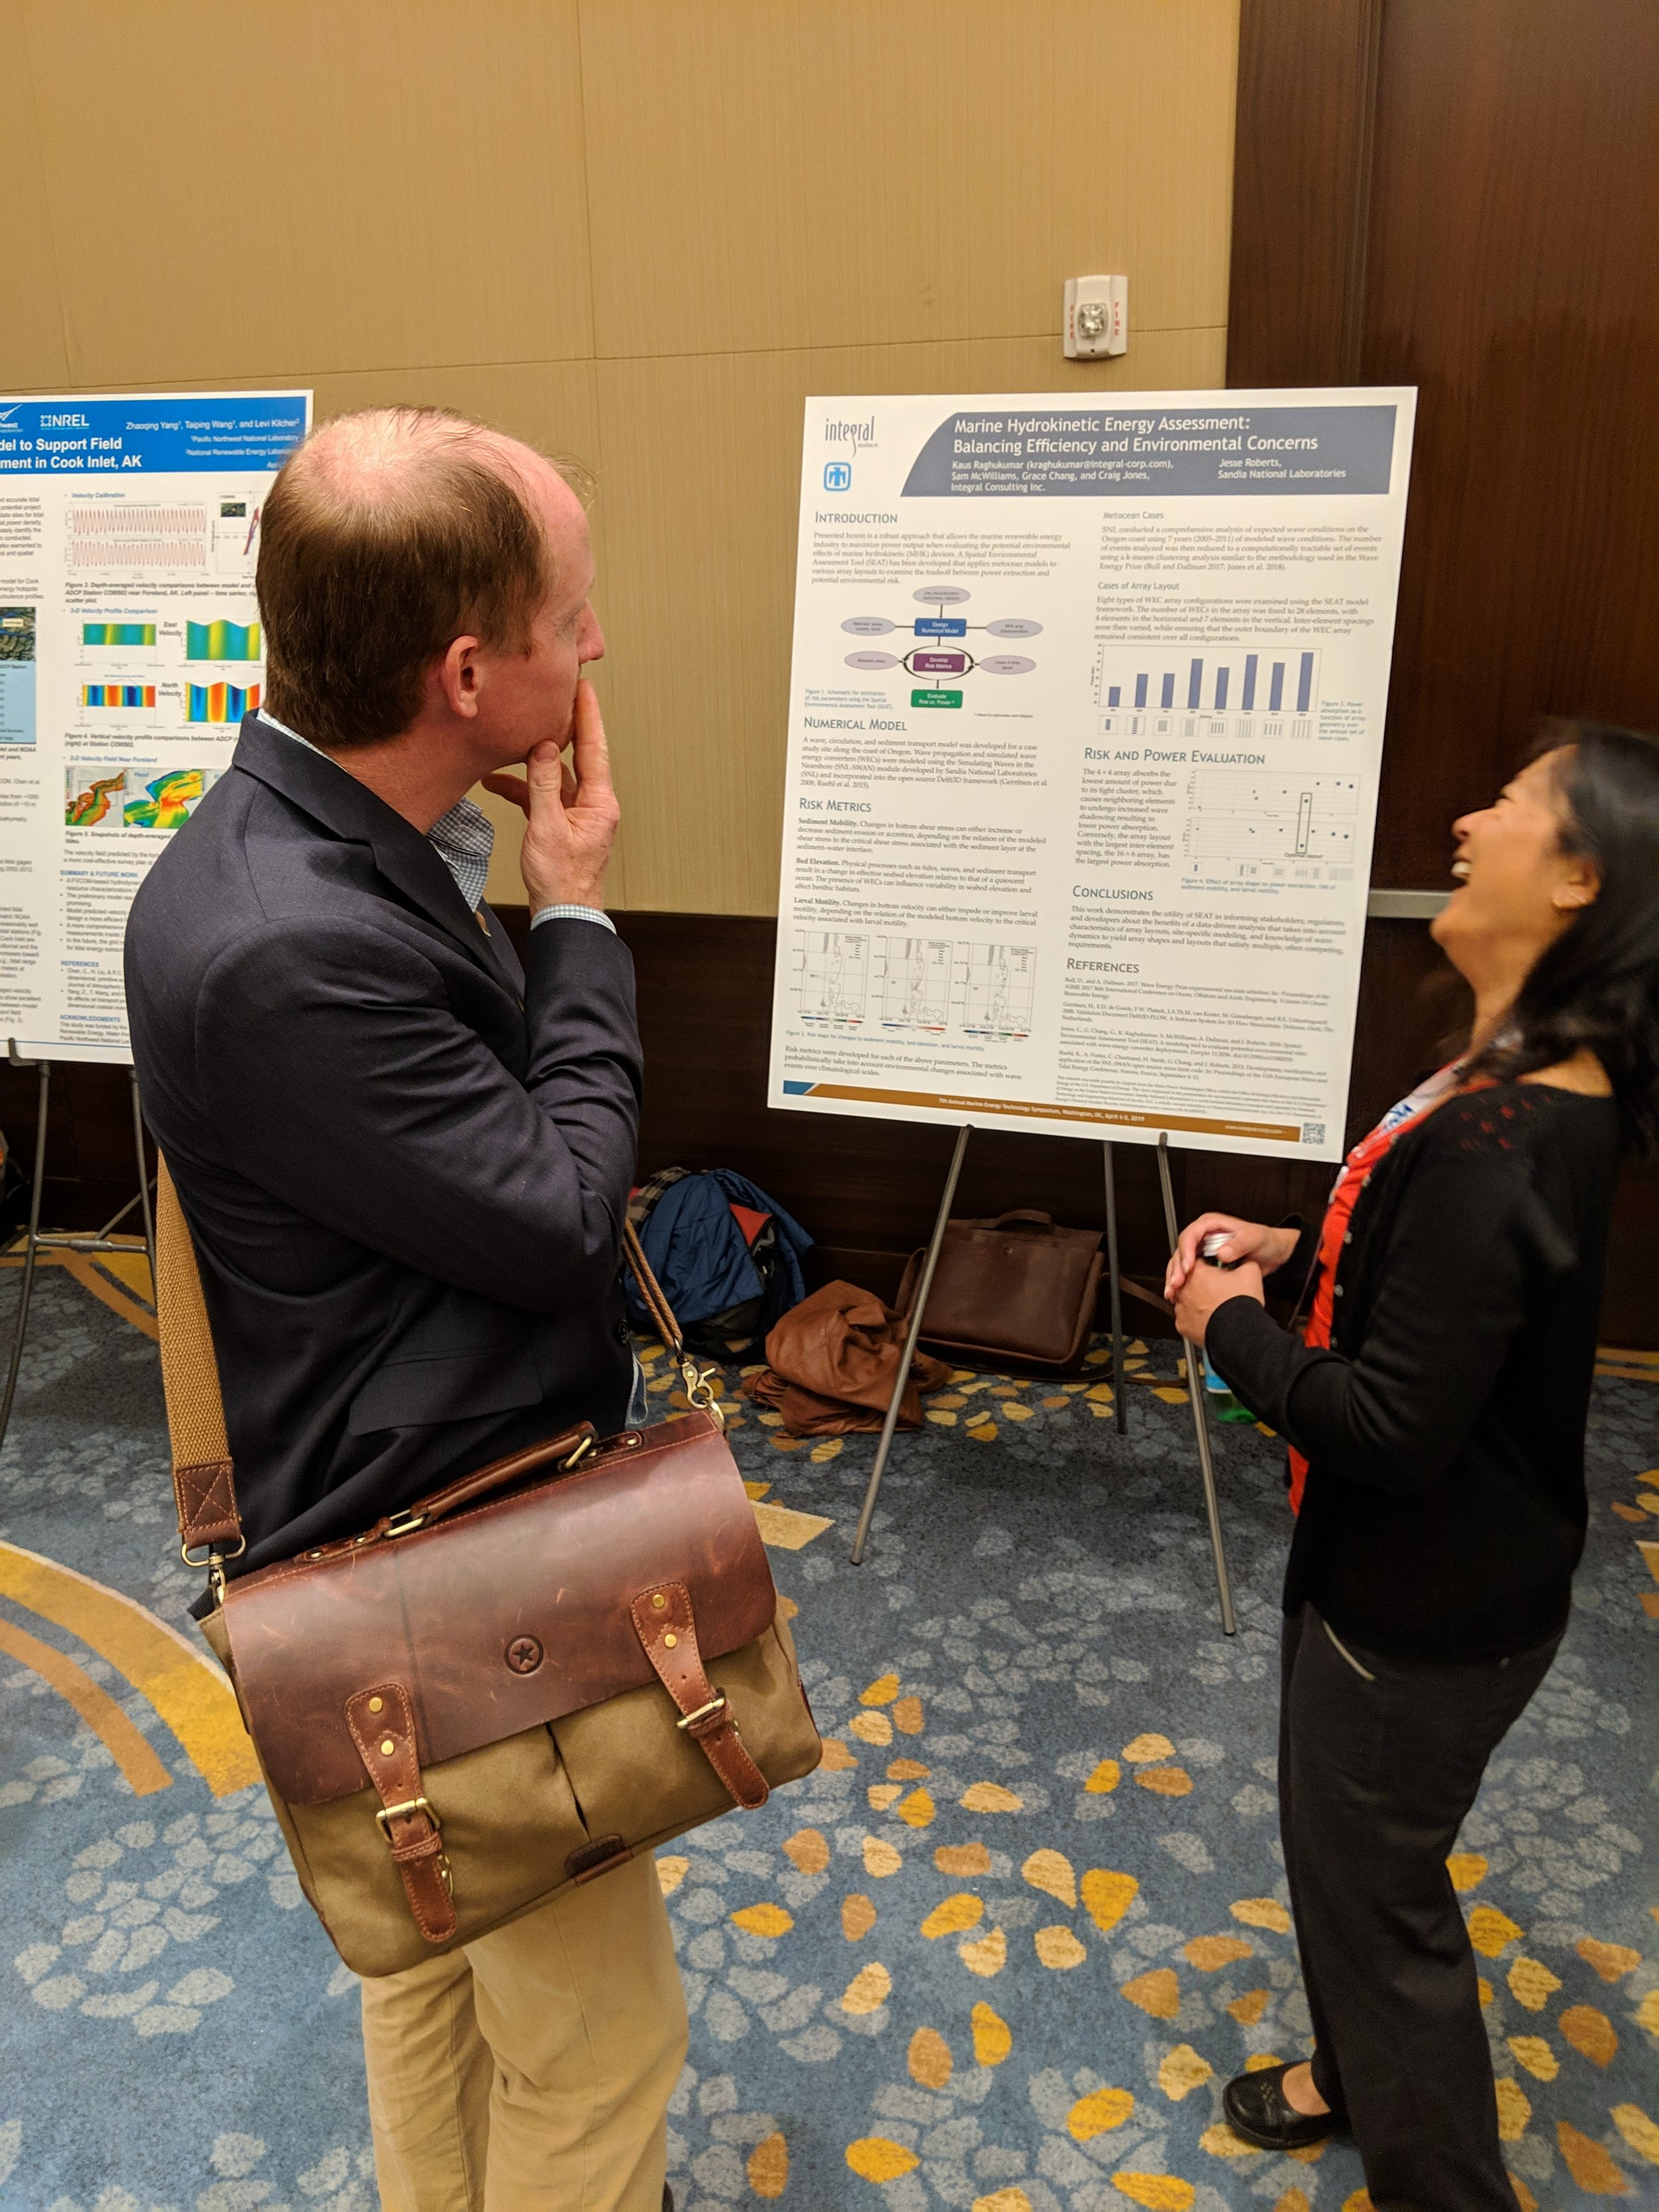 James Joslin touring the METS poster session